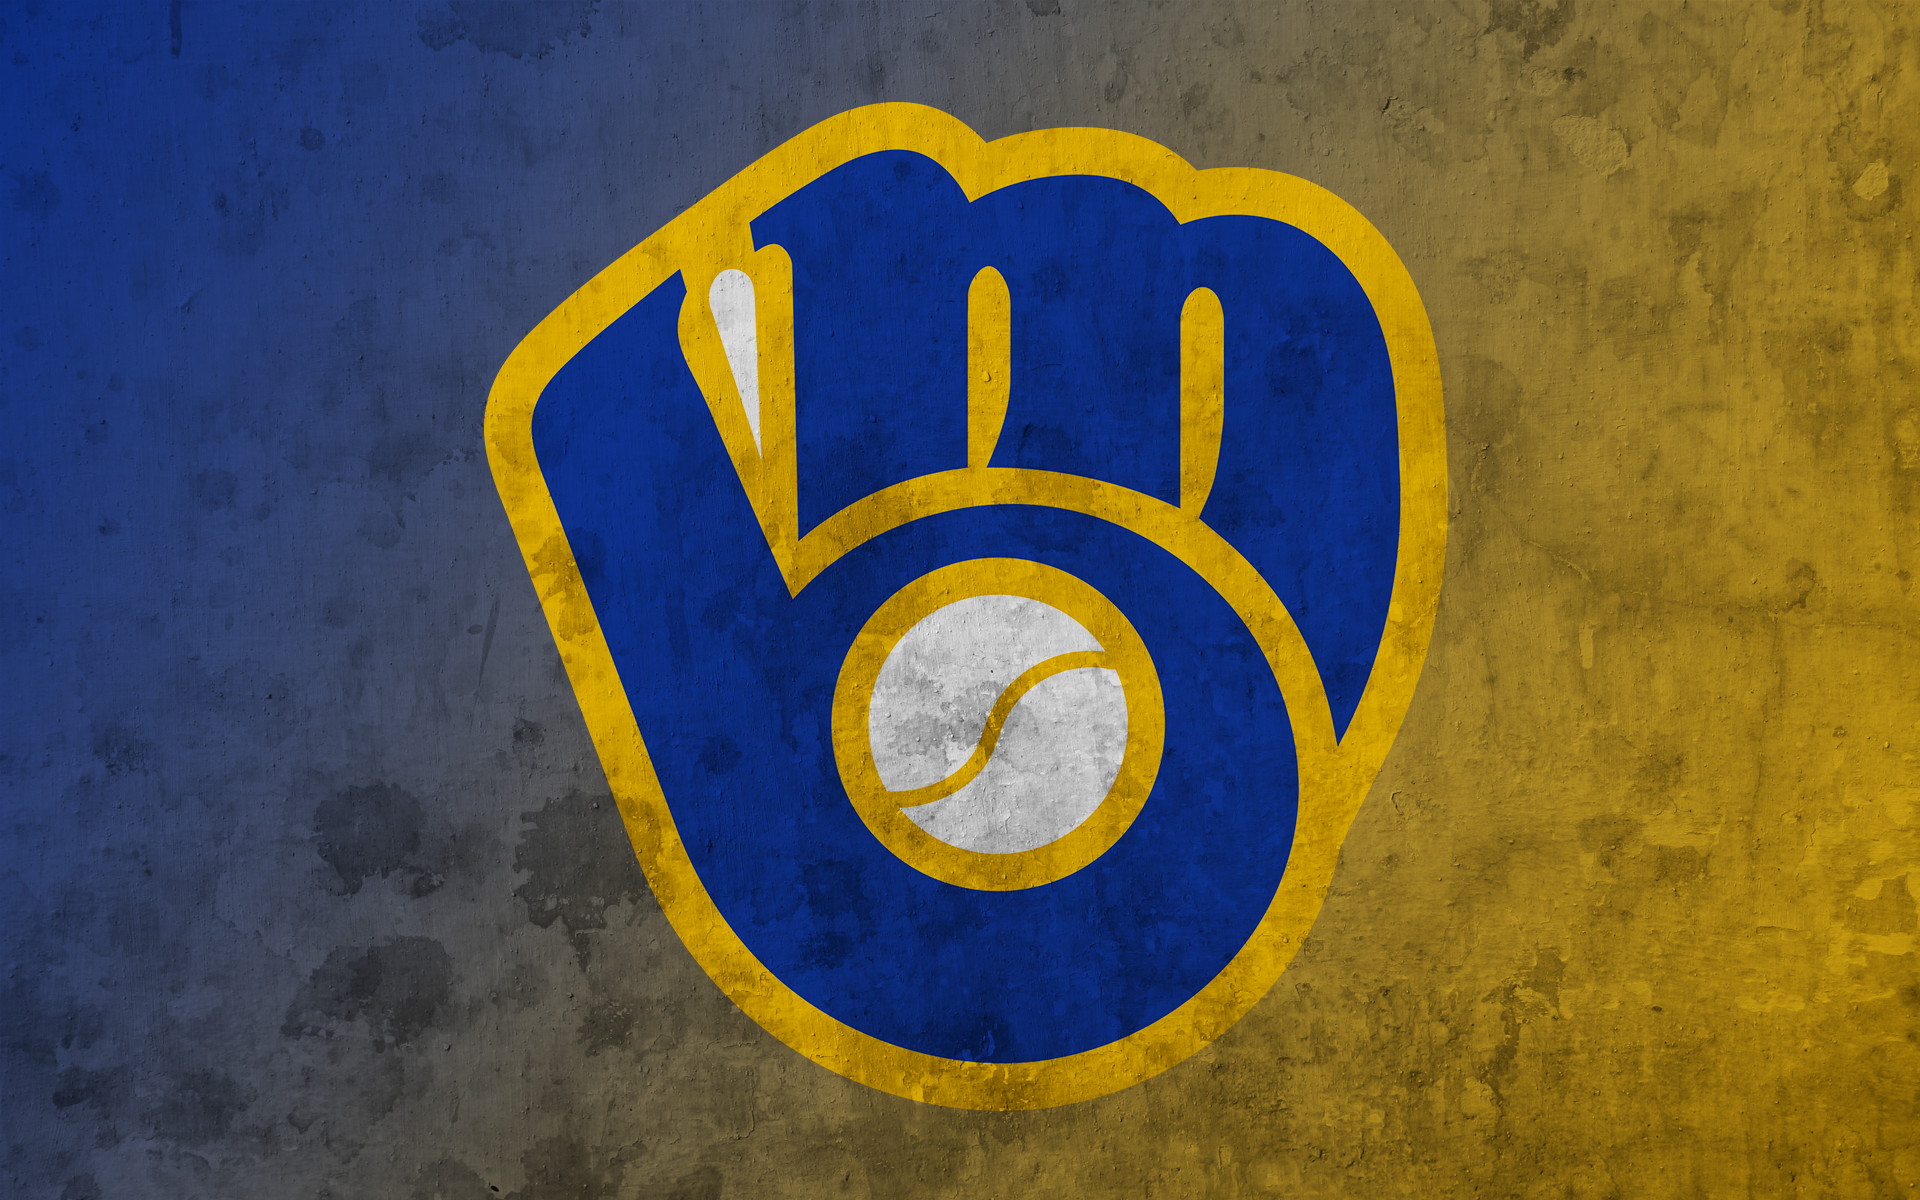 1920x1200 Desktop Images Of Milwaukee Brewers 121715 By Nena Ainsworth